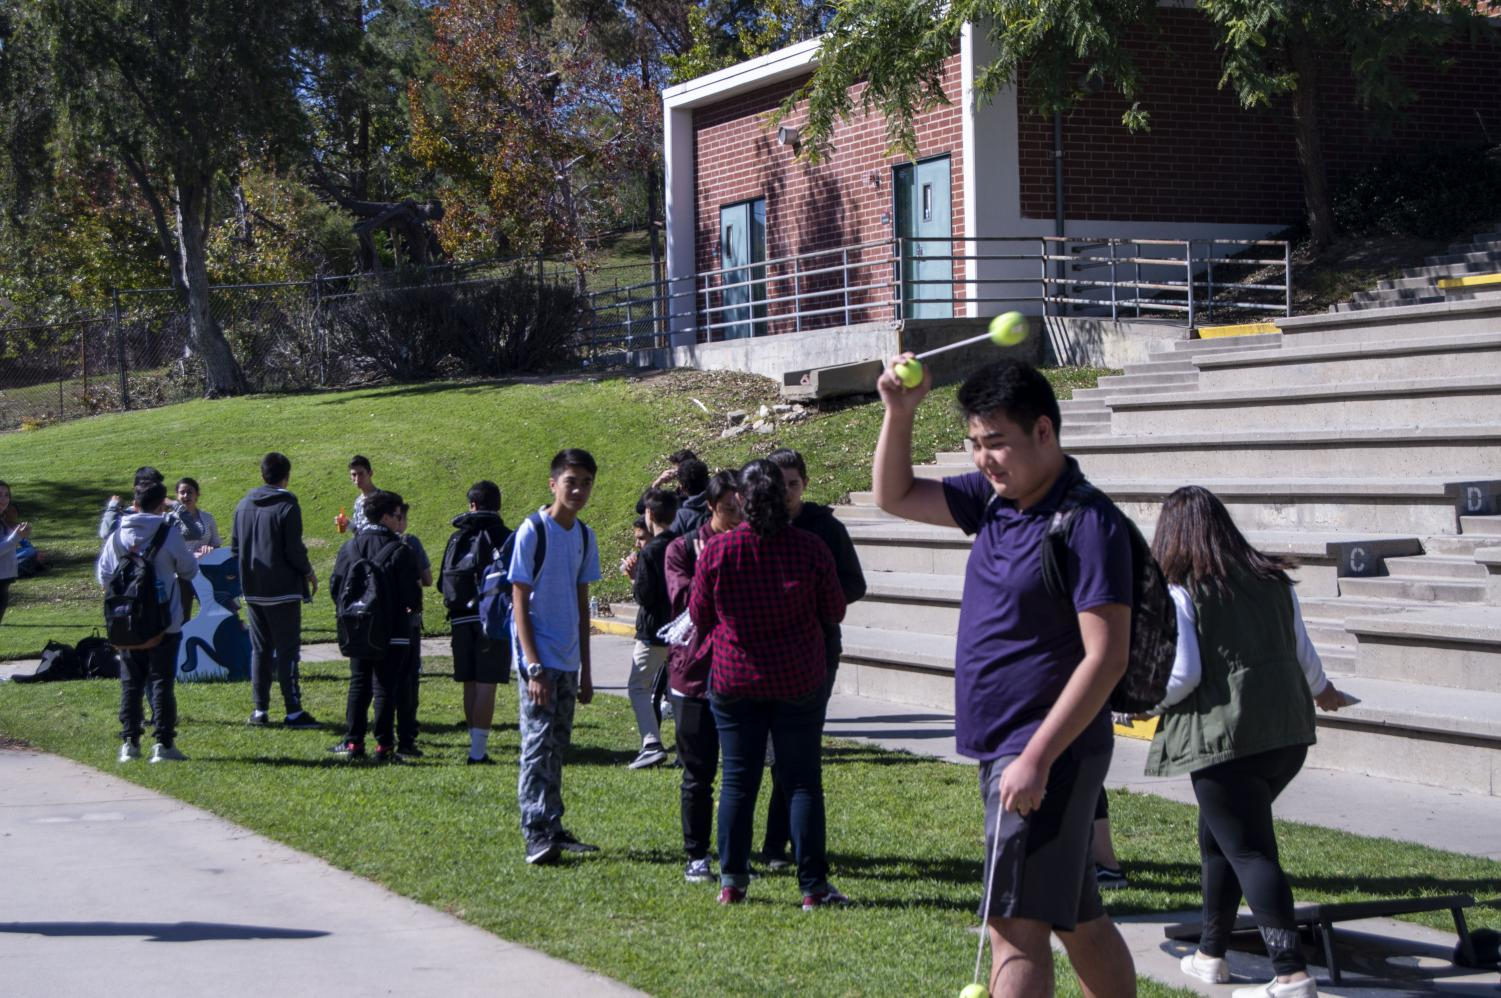 Students play the ball toss game during Clarktoberfest.